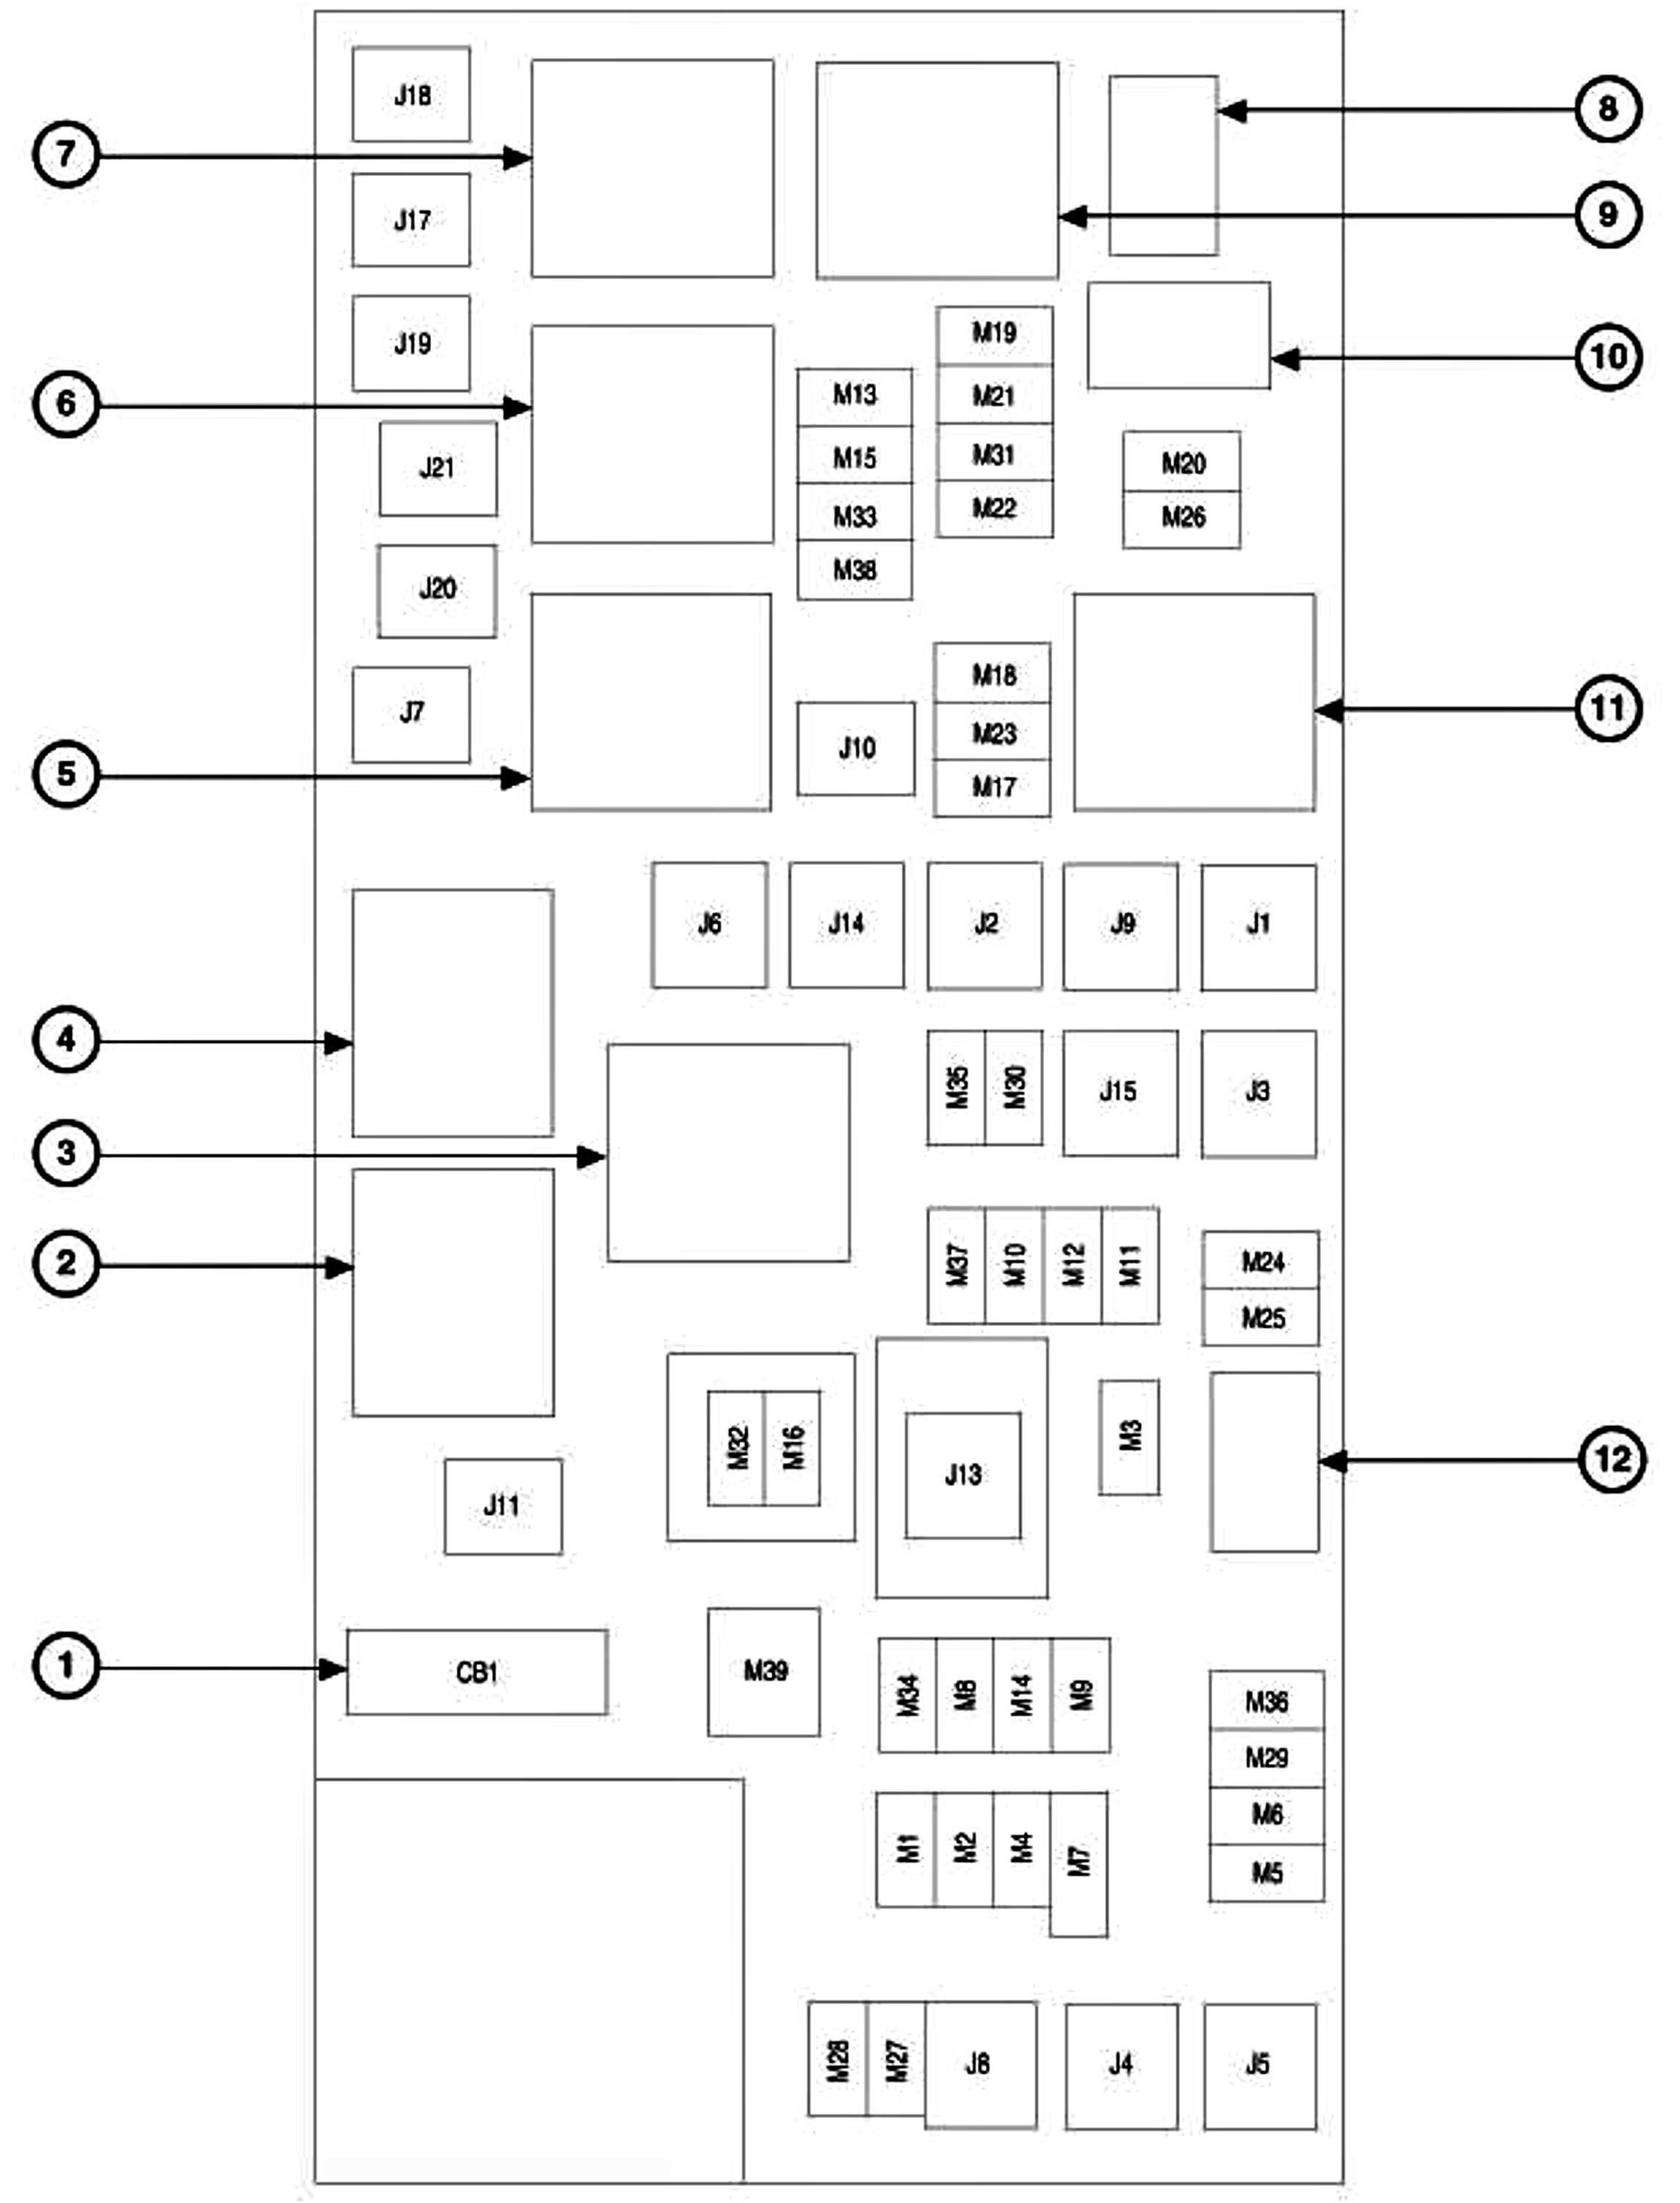 medium resolution of 2008 jeep commander fuse box schema diagram database jeep commander fuse box diagram jeep commander fuse box location